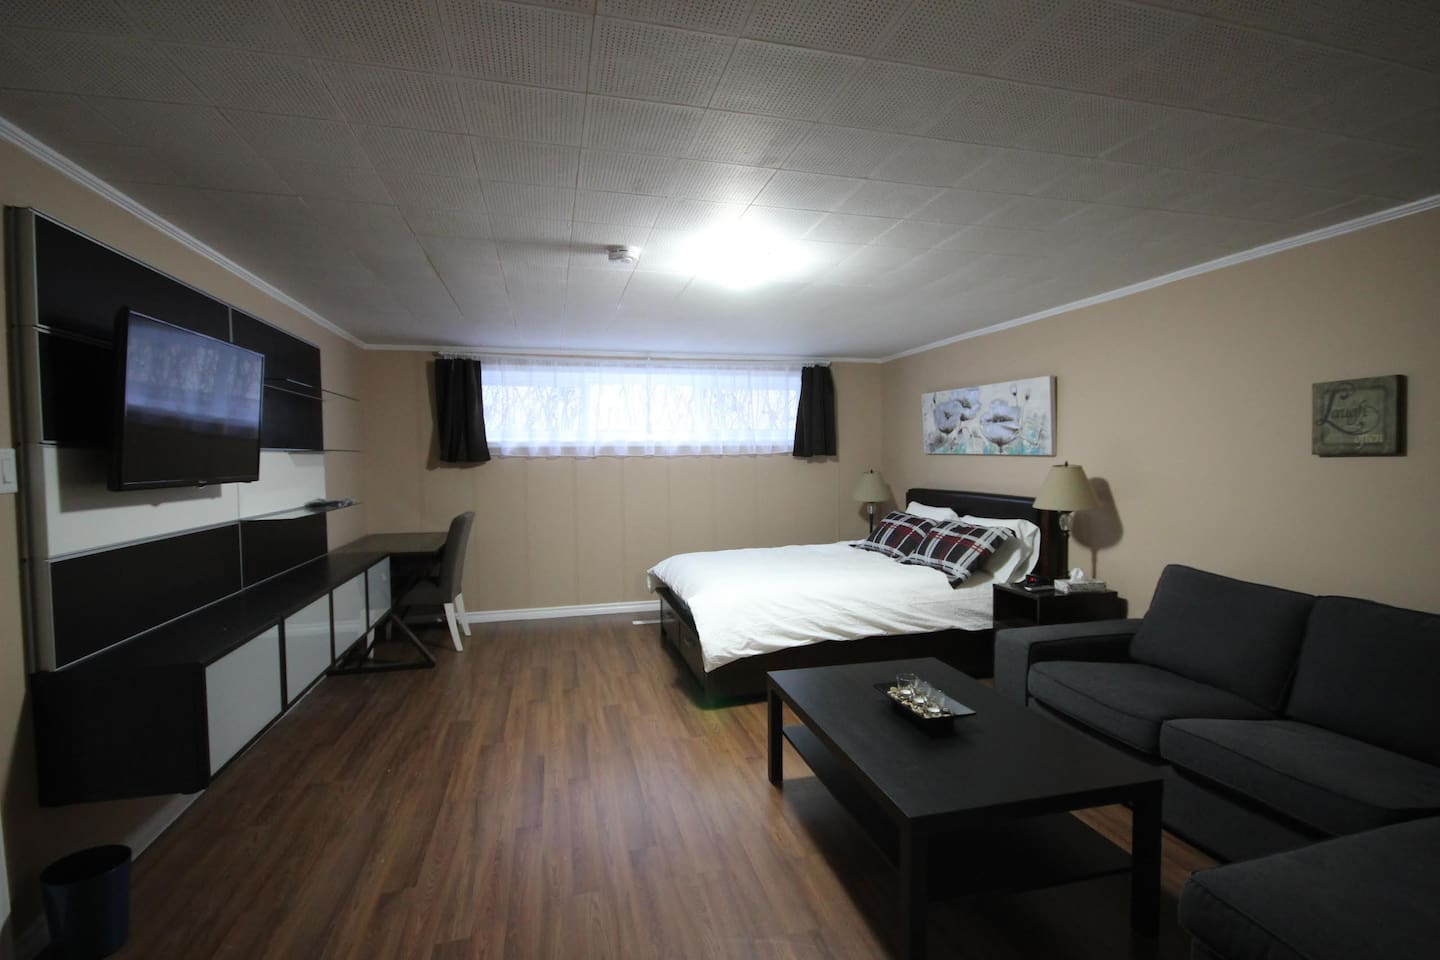 This room includes its own living room and a queen sized bed. It is located in the basement for extra privacy. Large windows allow for lots of sunlight.